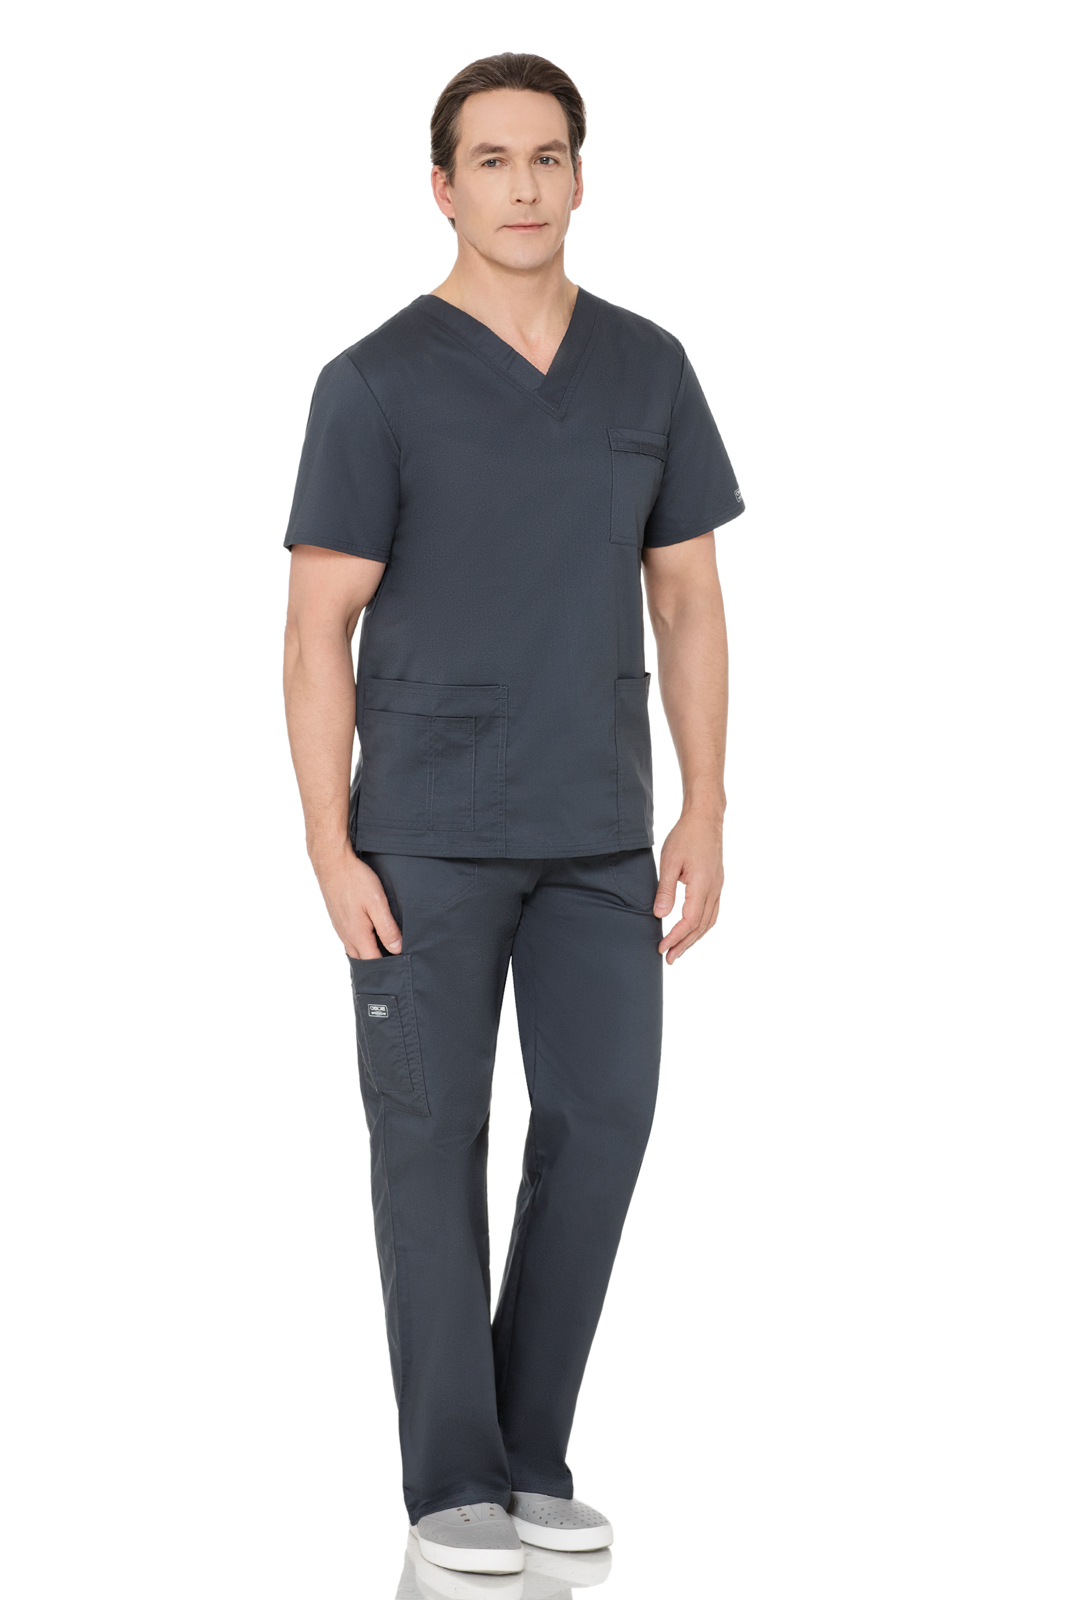 https://medcloth.by/images/stories/virtuemart/product/4043-pwtw-4.jpg